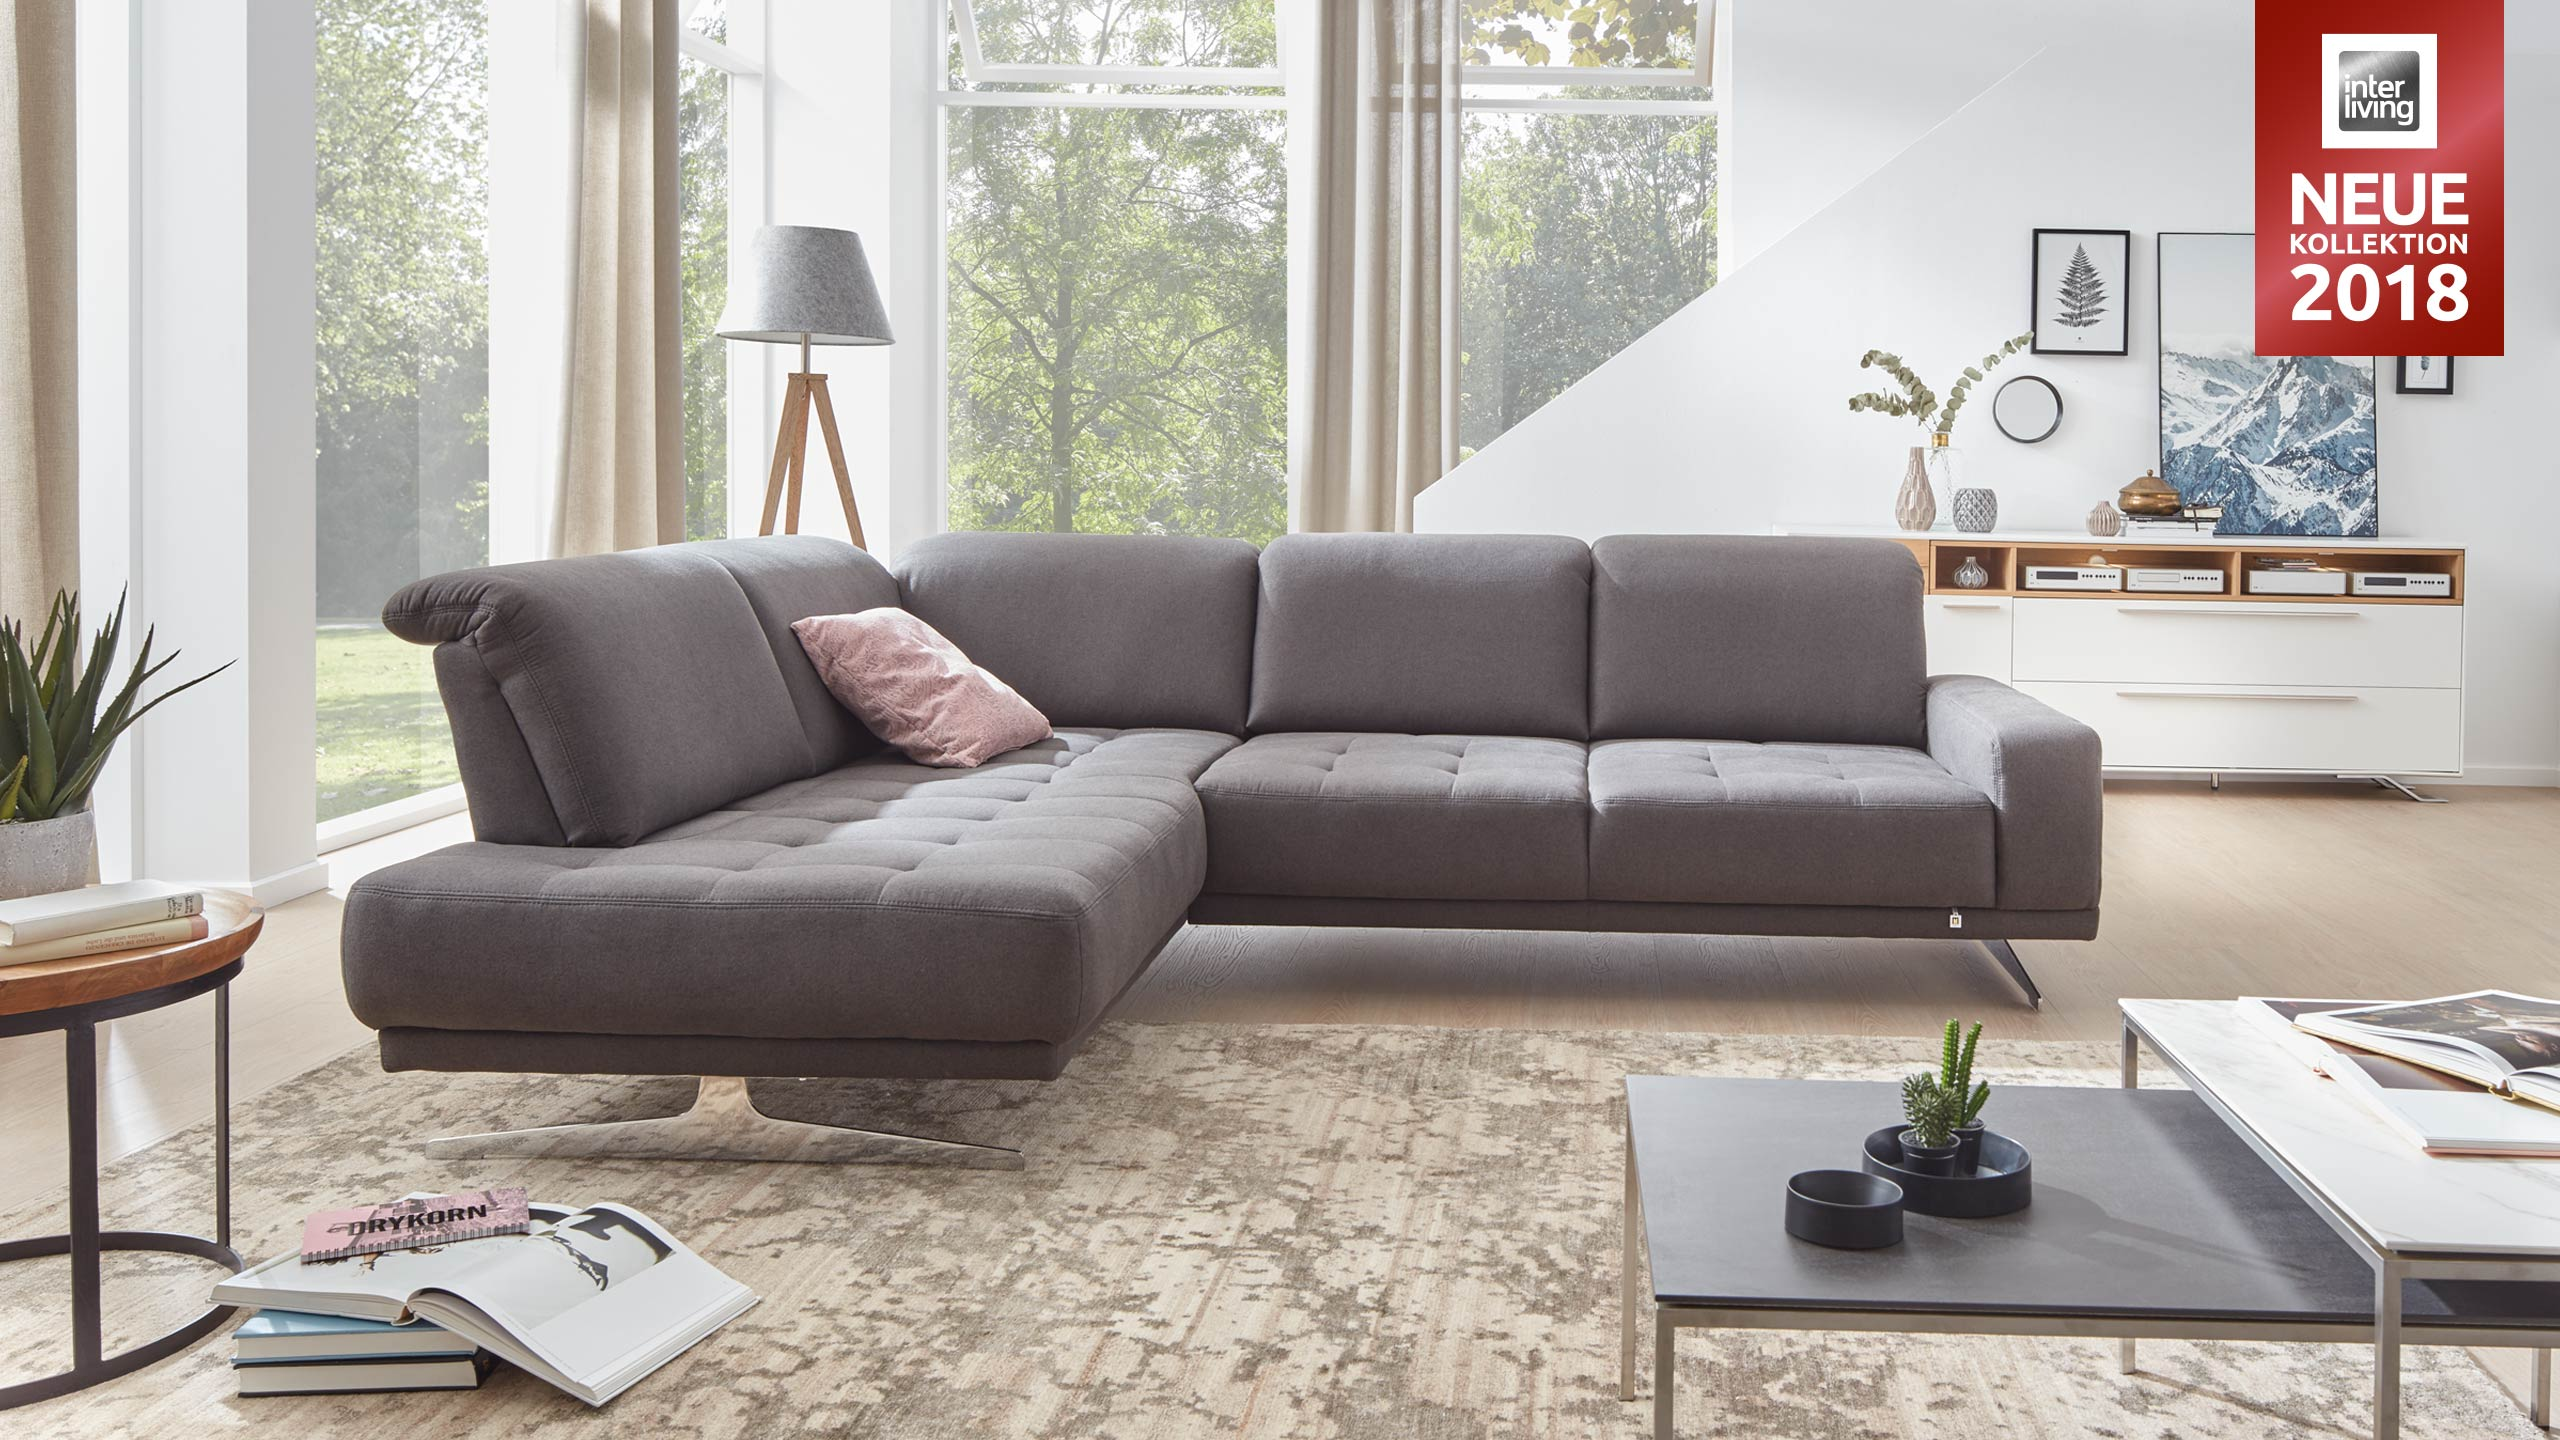 Interliving Sofa Serie 4250 Eckkombination Gleissner